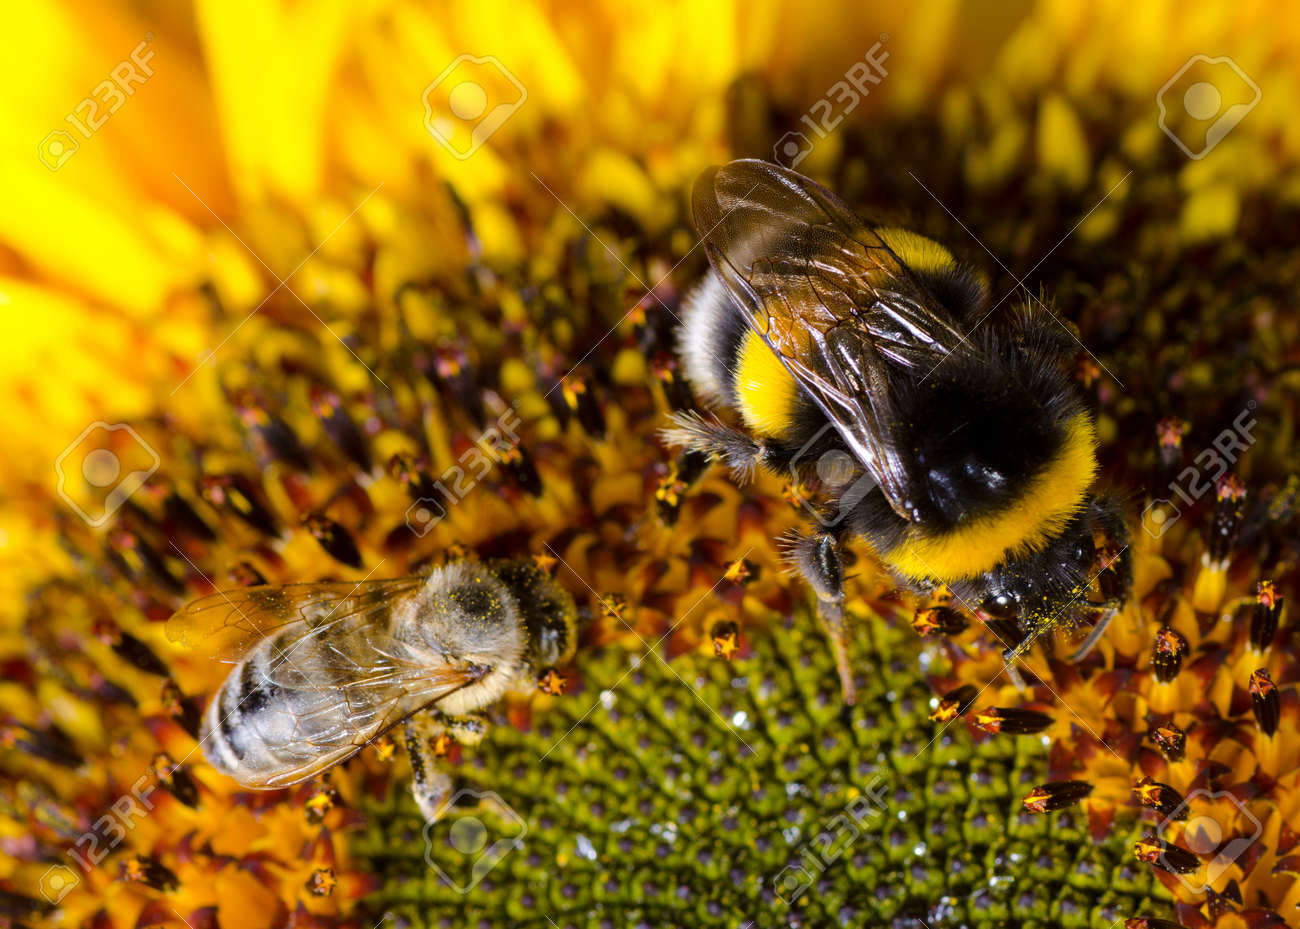 Bumblebee on a Sunflower, Close-up - 27560661